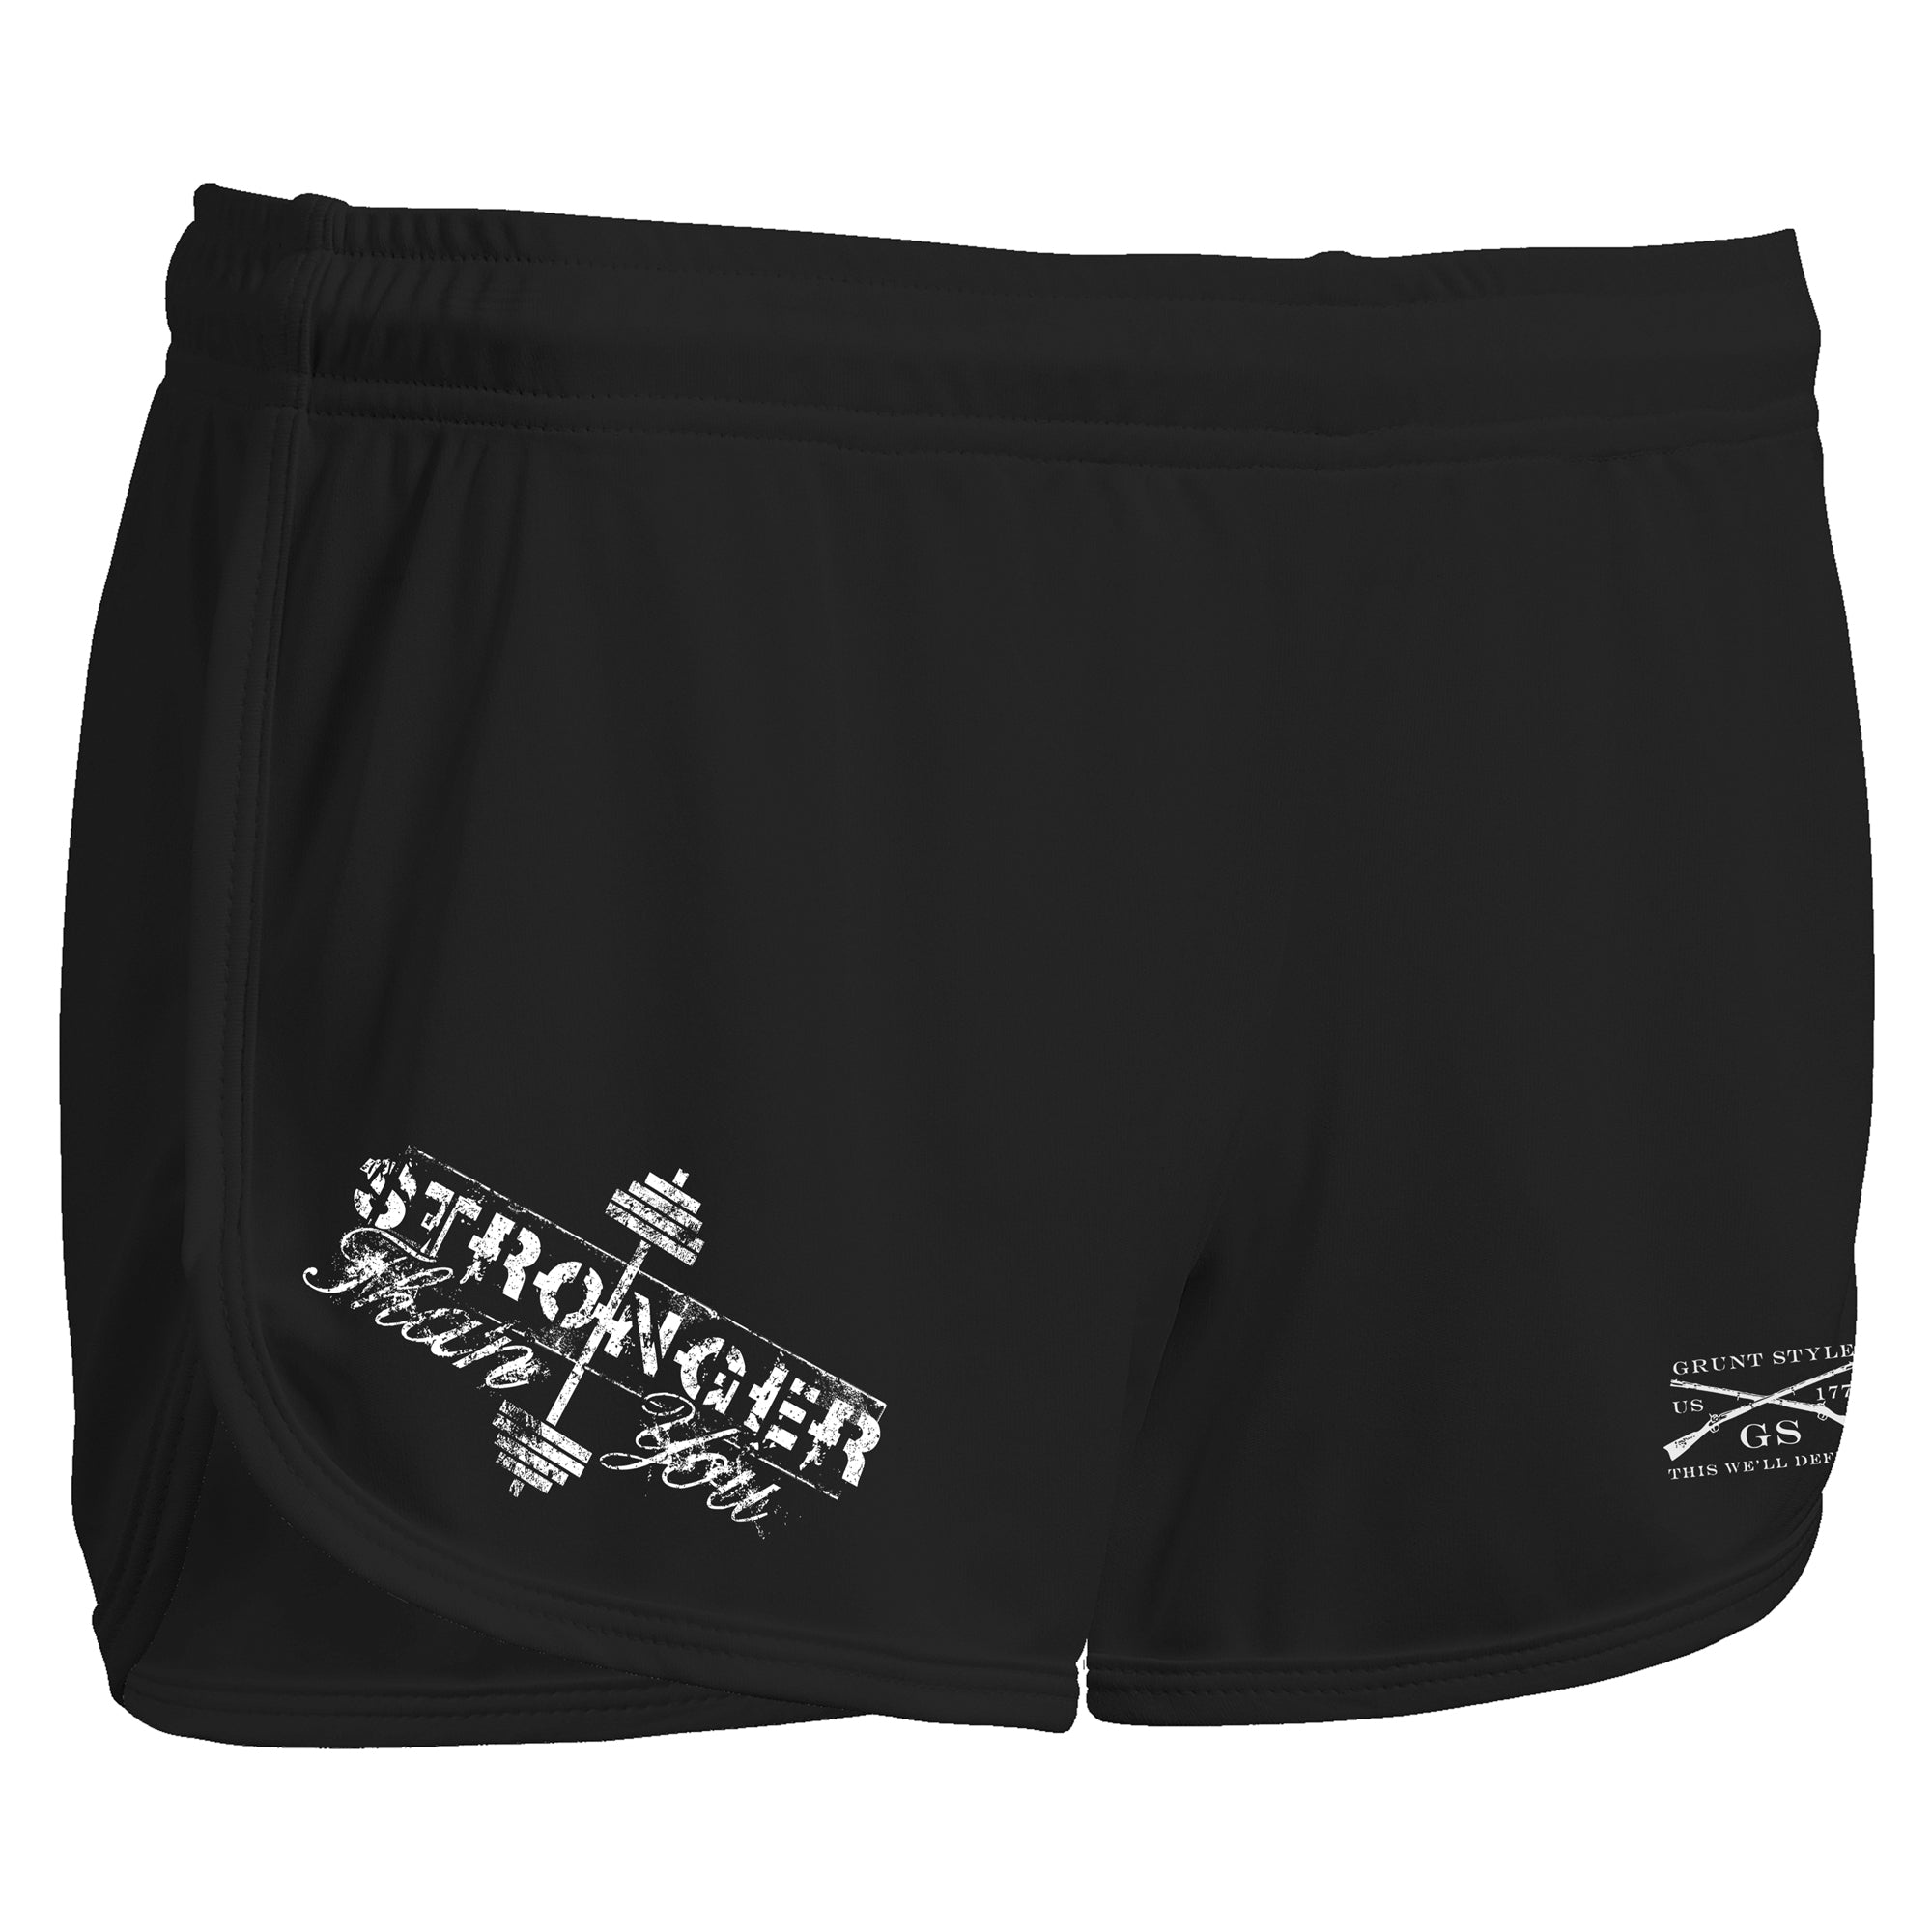 Stronger Than You Cupid Shorts